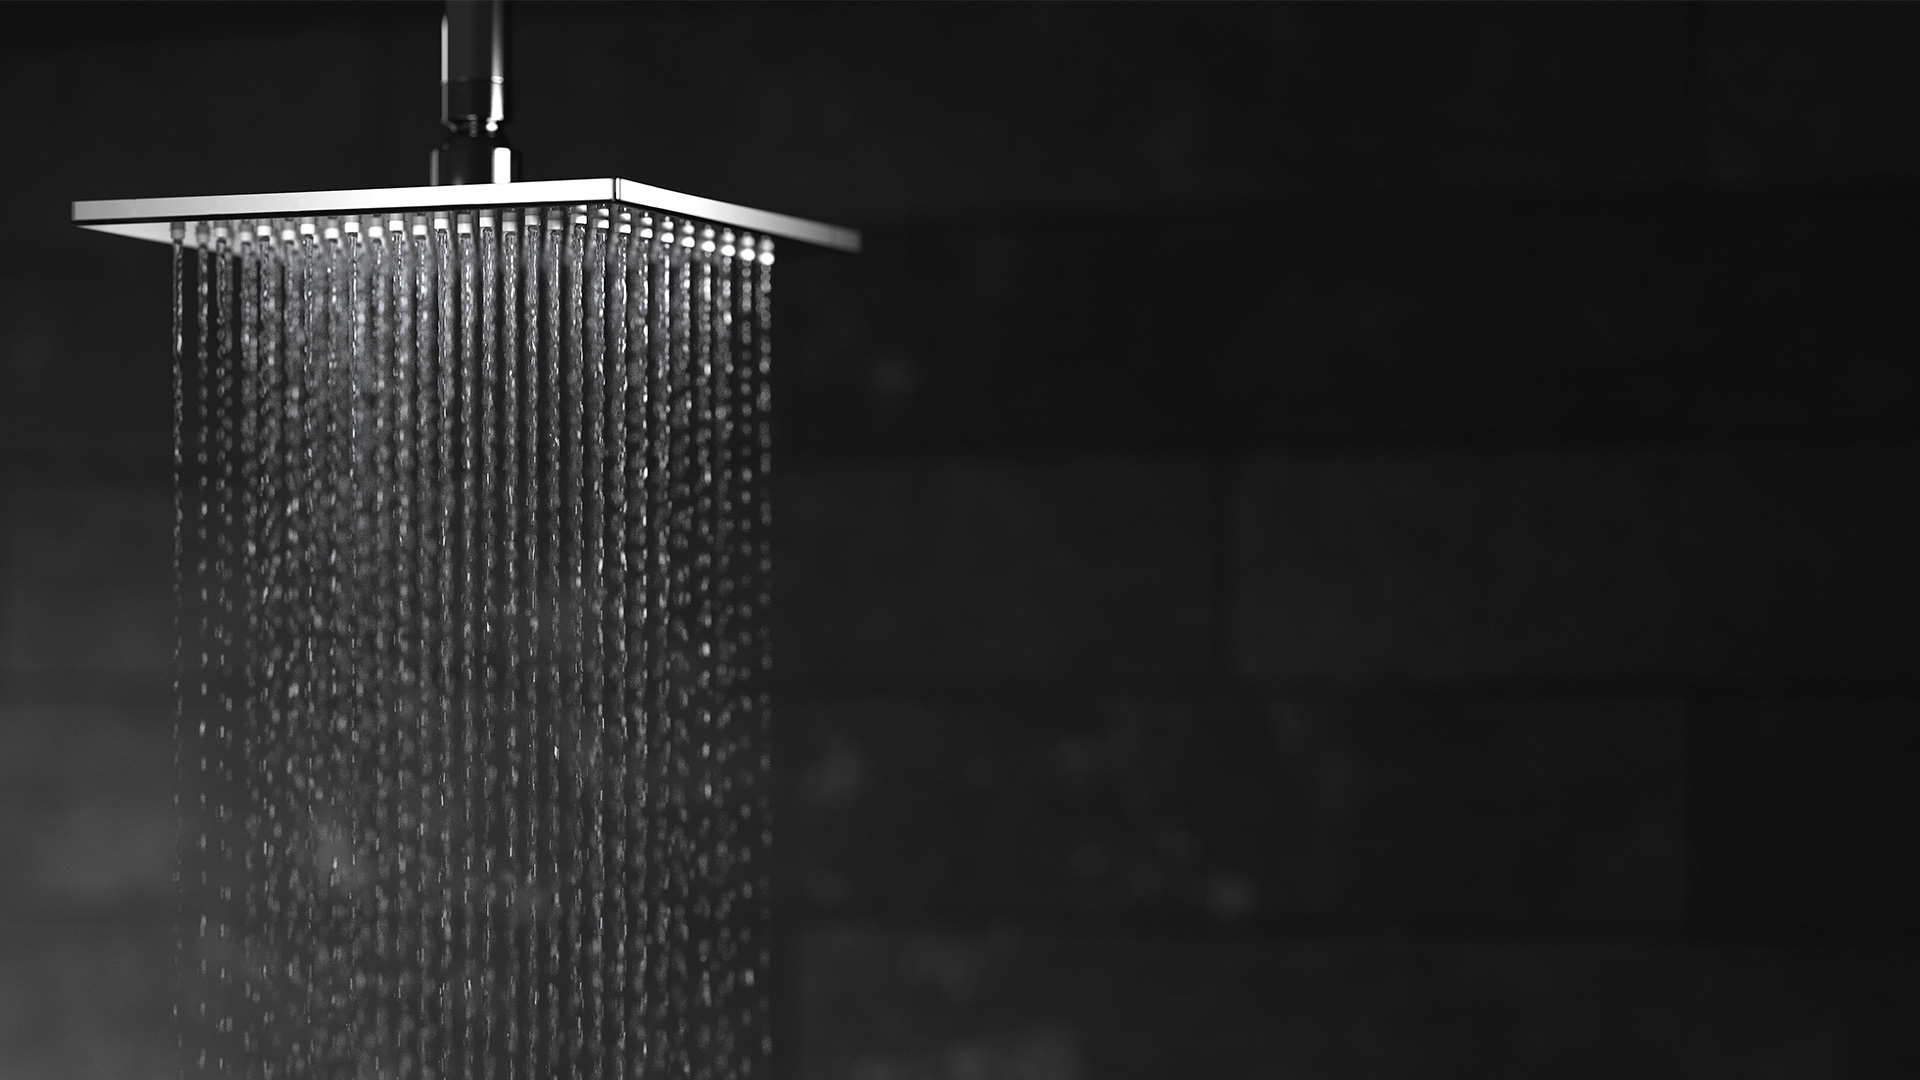 image of NOW ceiling mounted shower head with running water